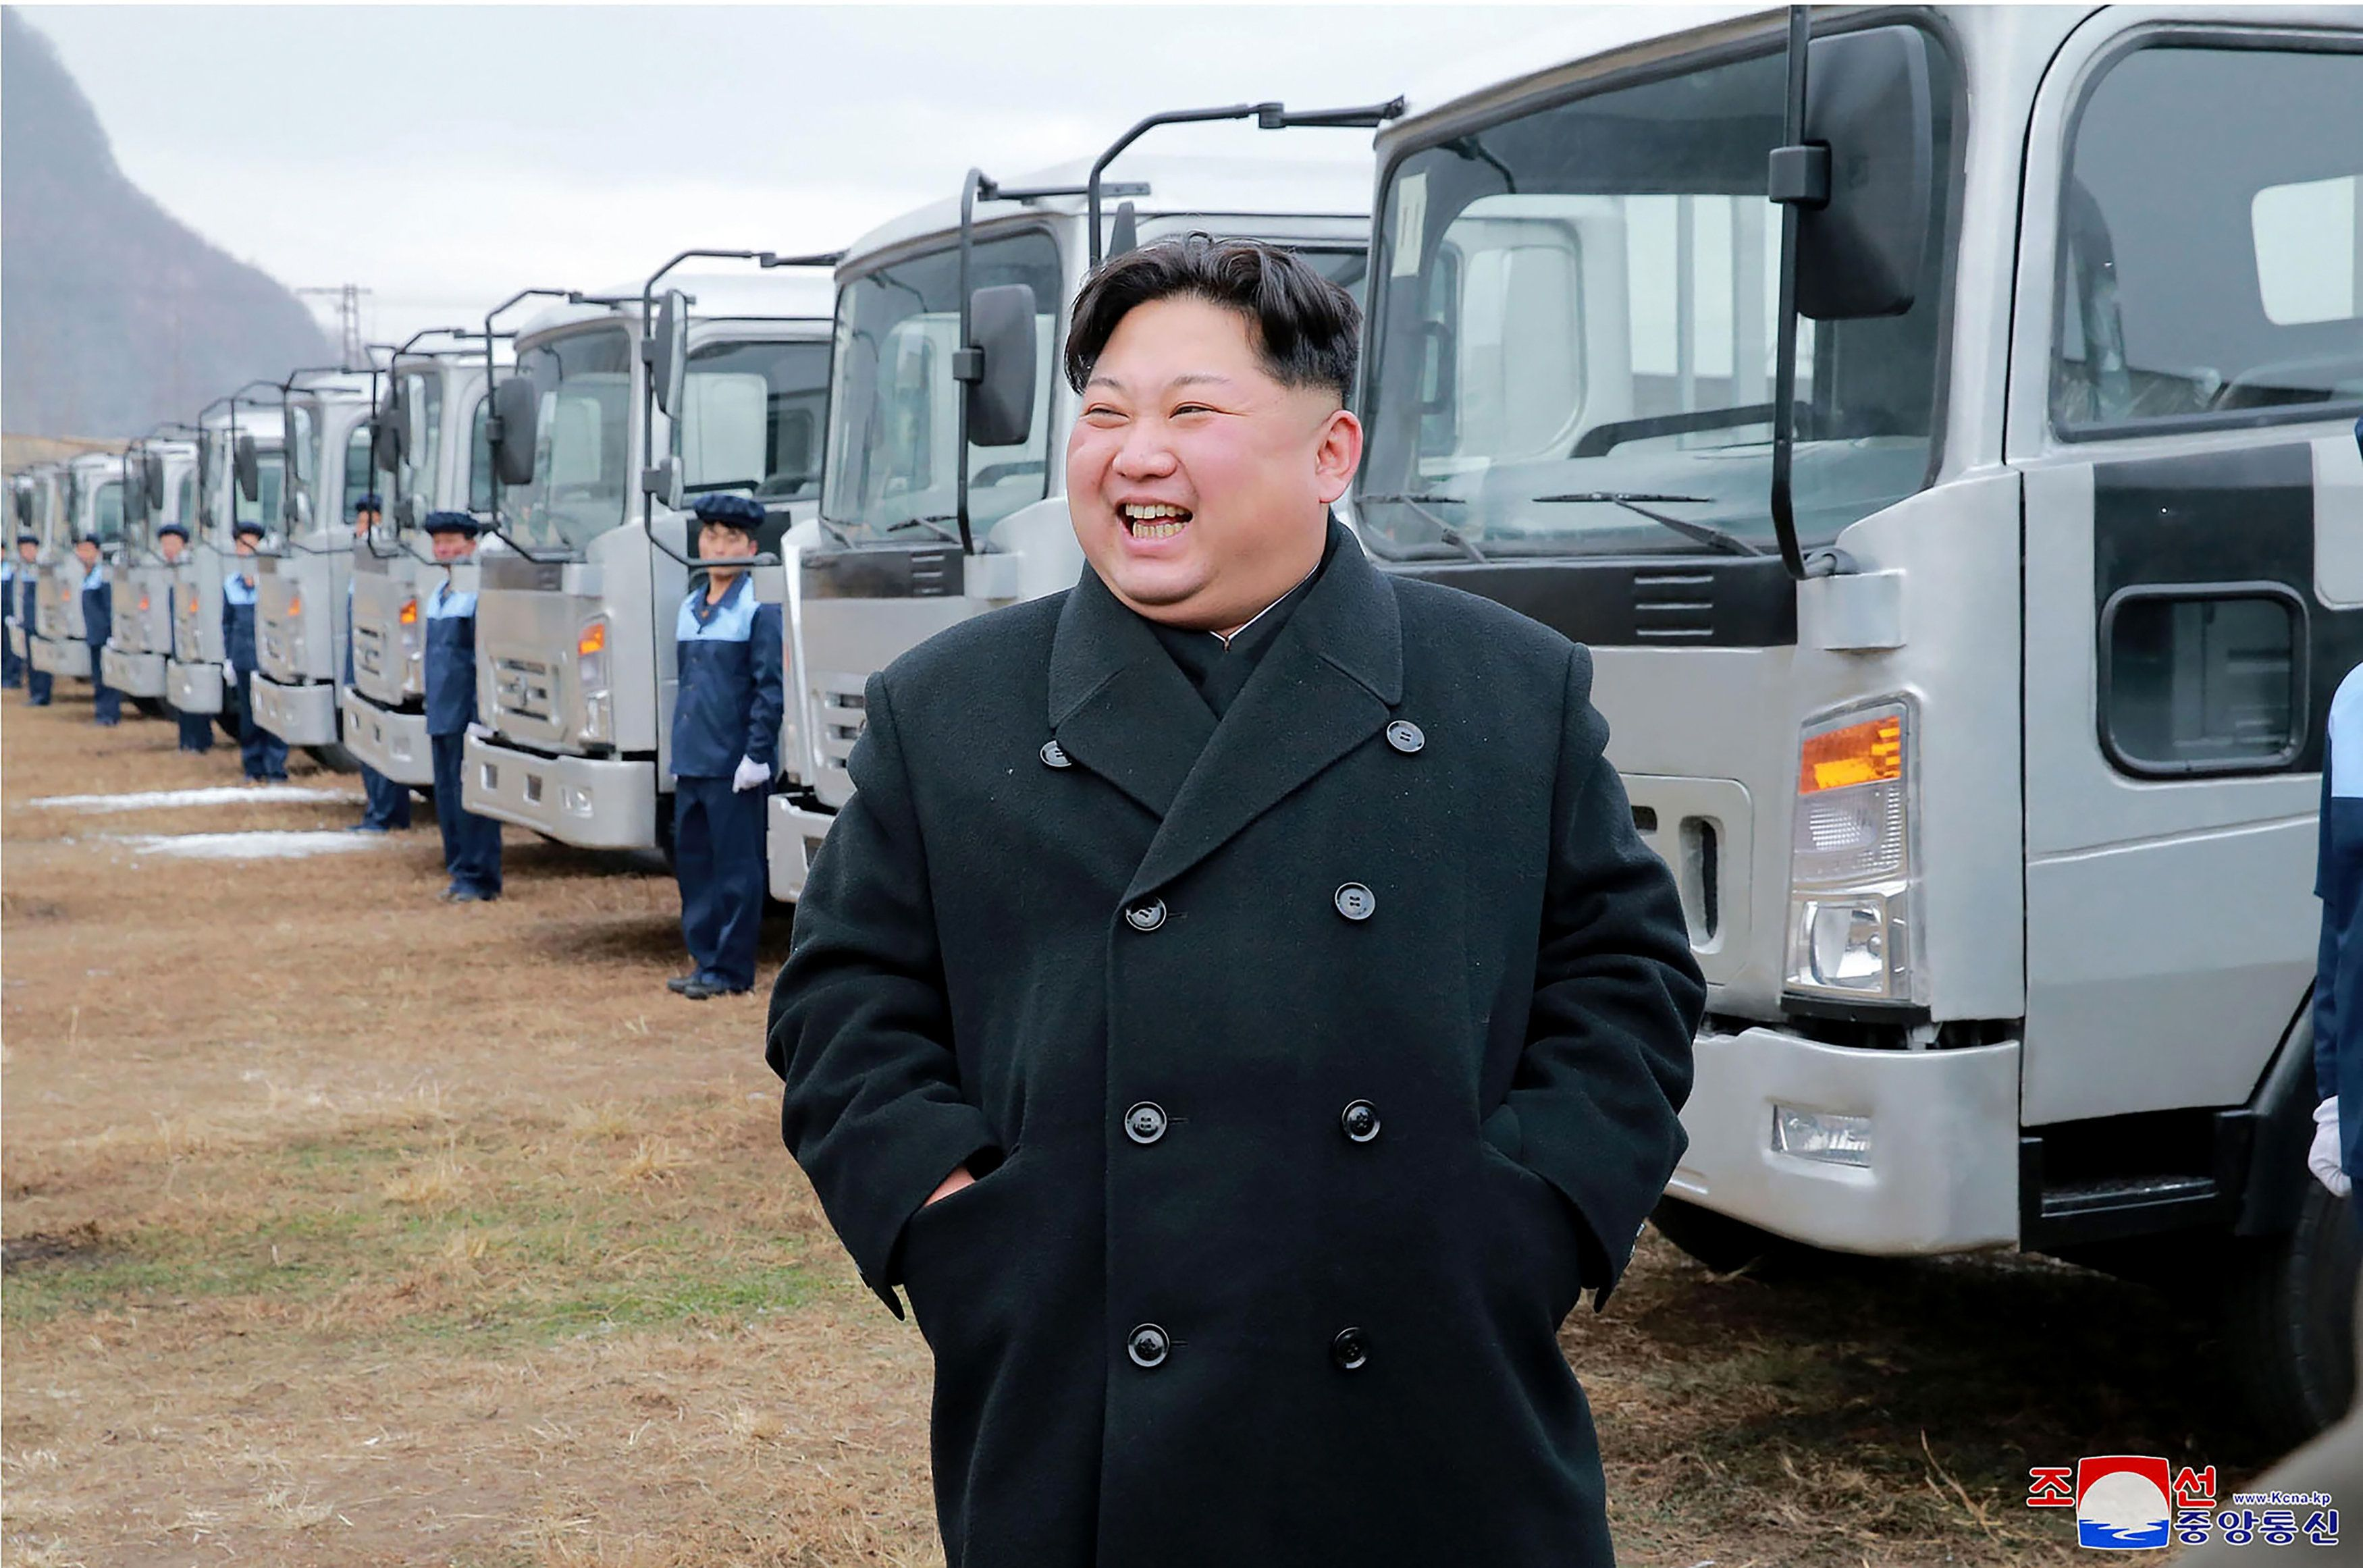 North Korean leader Kim Jong-Un has fired off test launches of intercontinental ballistic missiles in recent months.